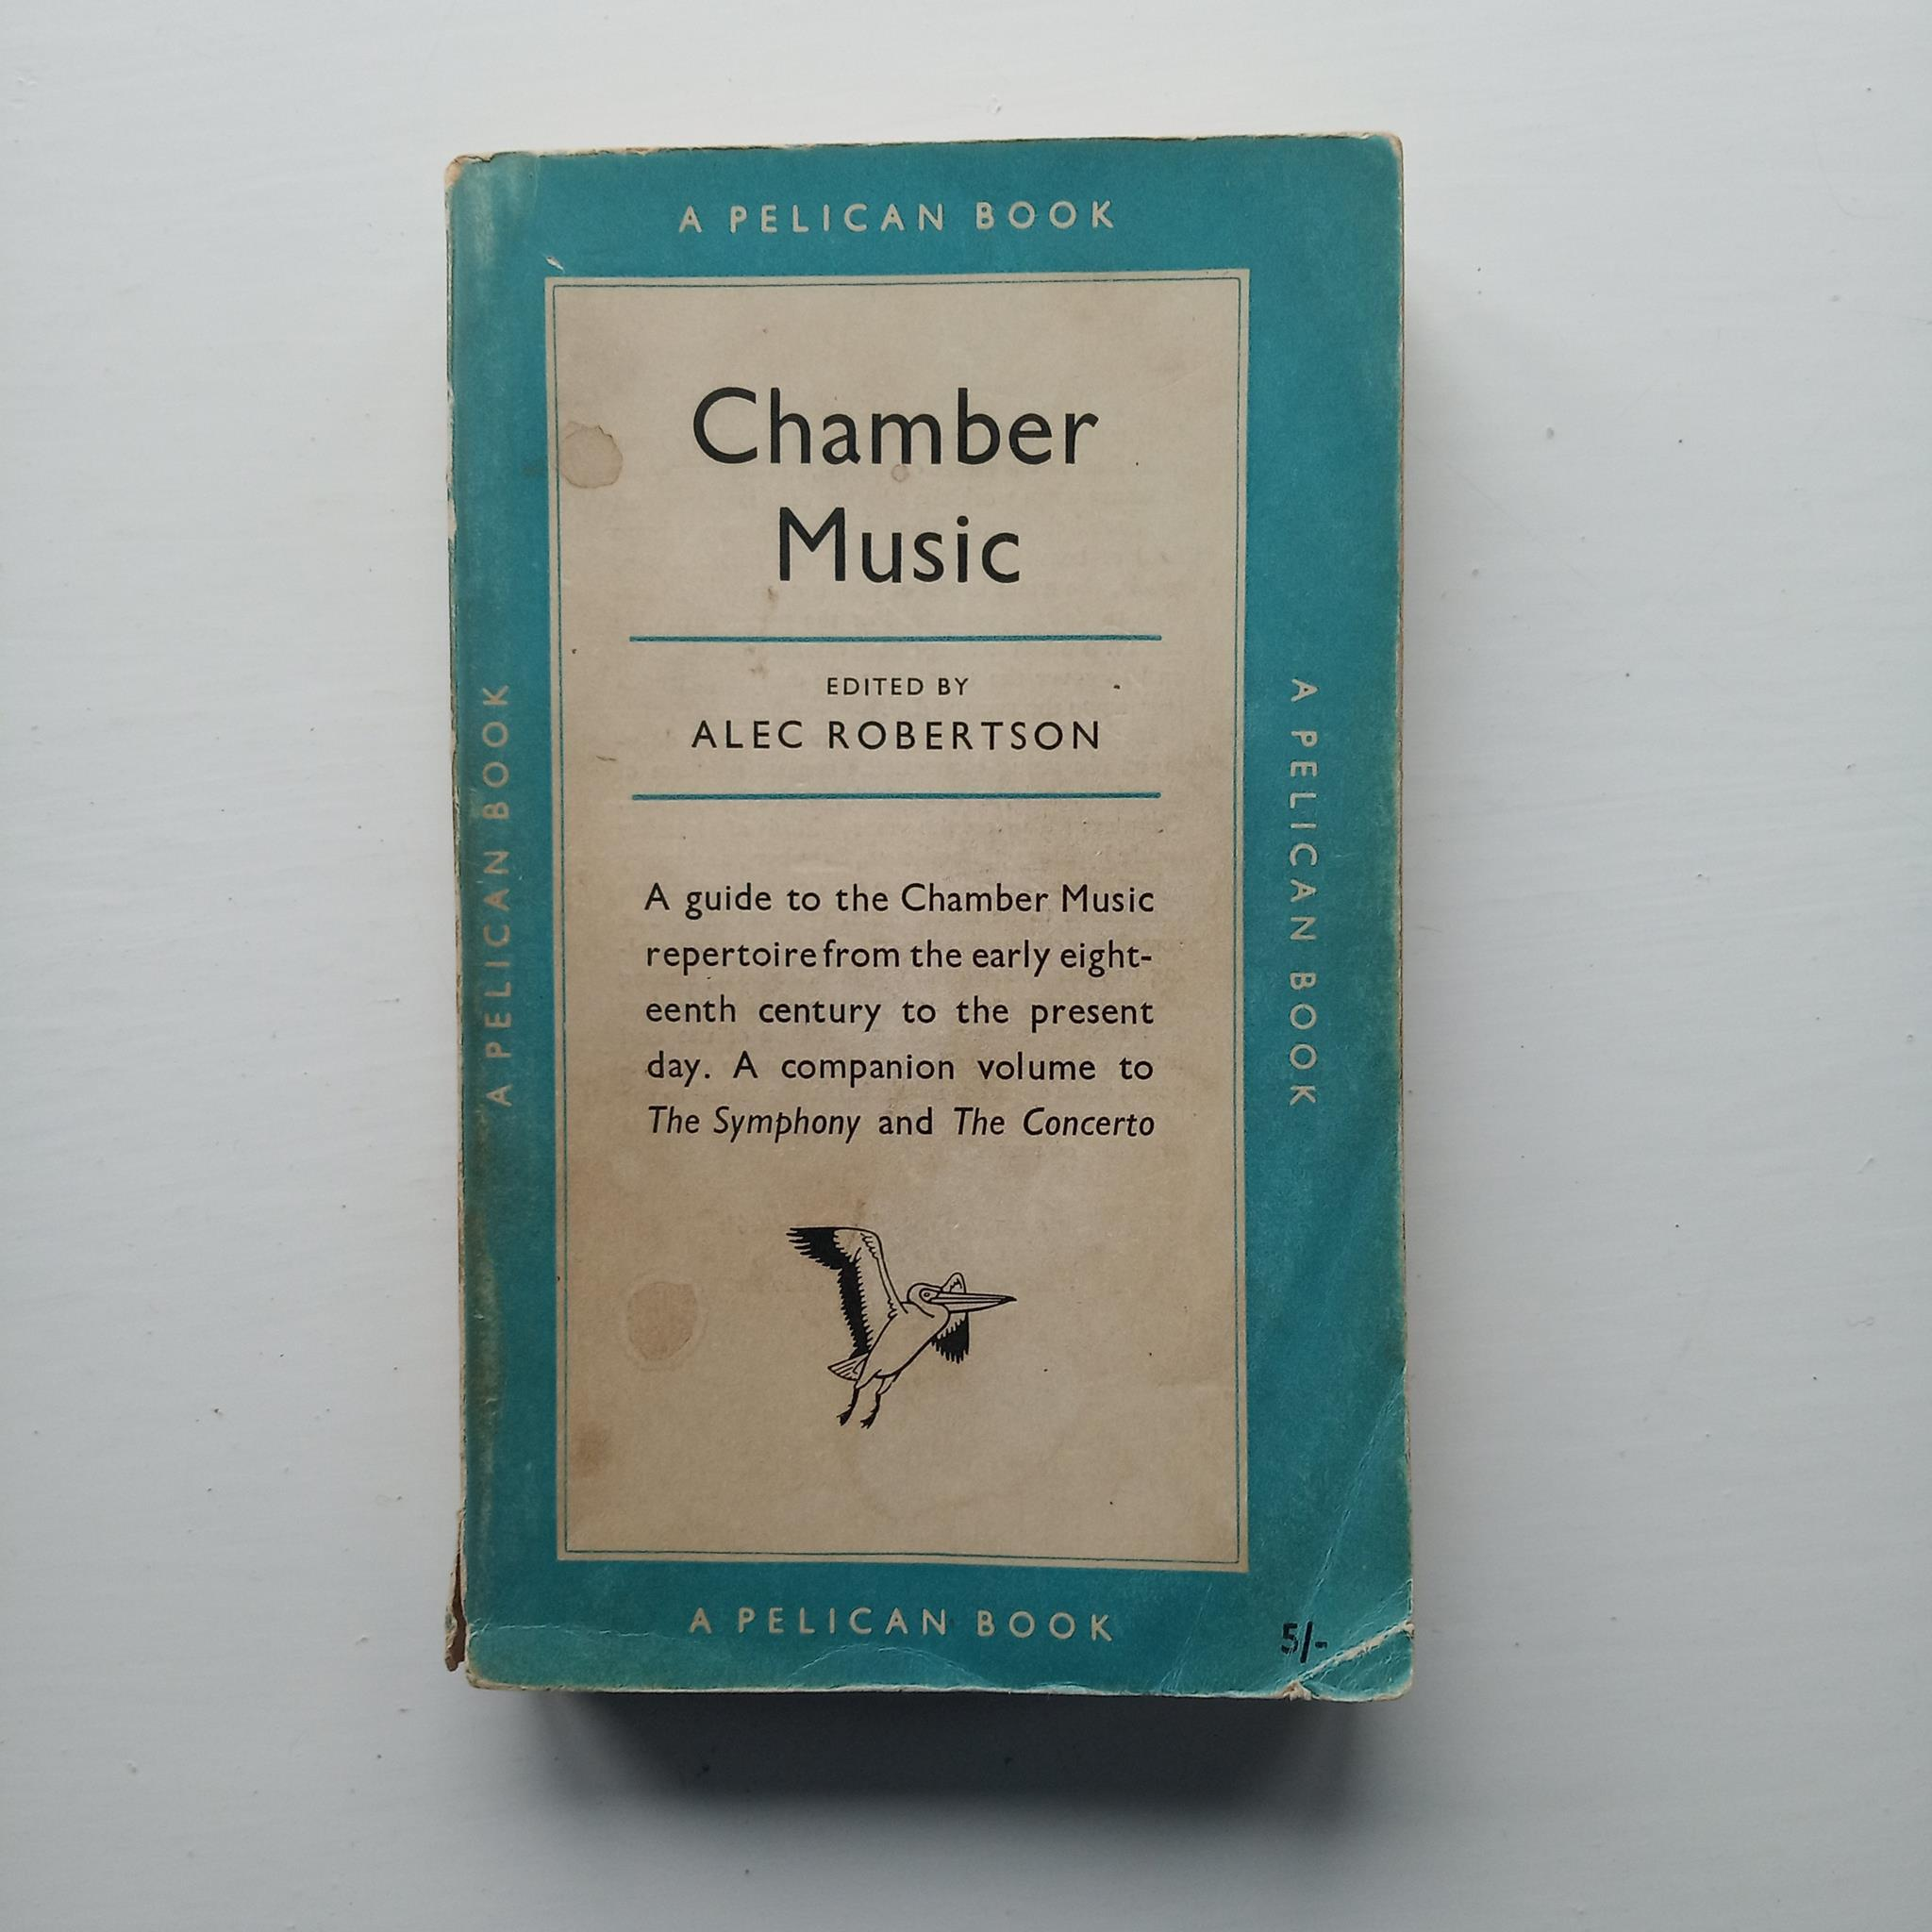 Chamber Music by Alec Robertson (ed)